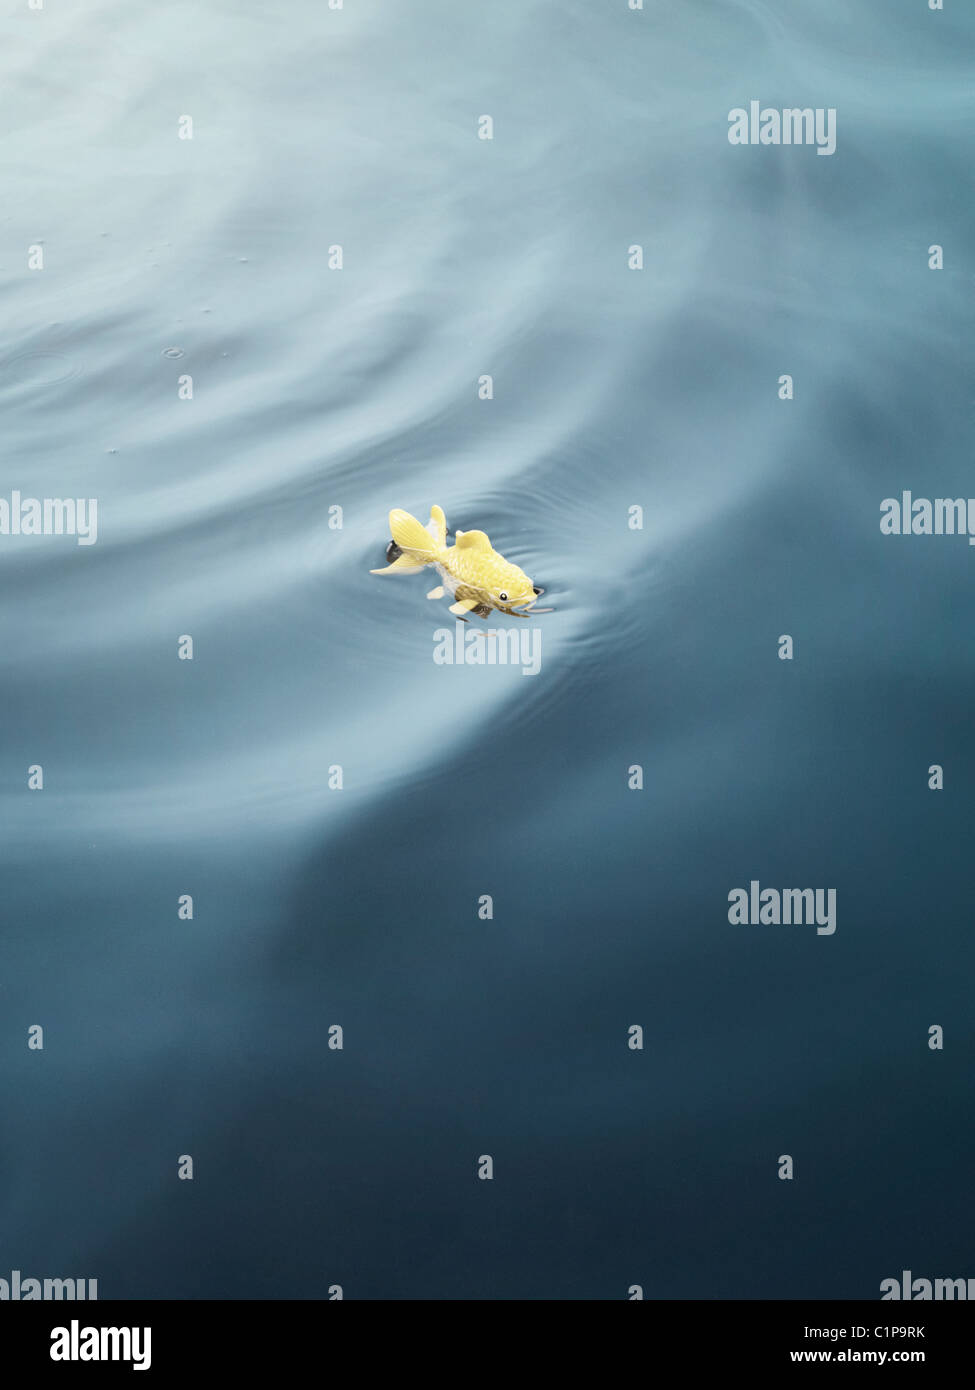 Toy fish swimming in water - Stock Image